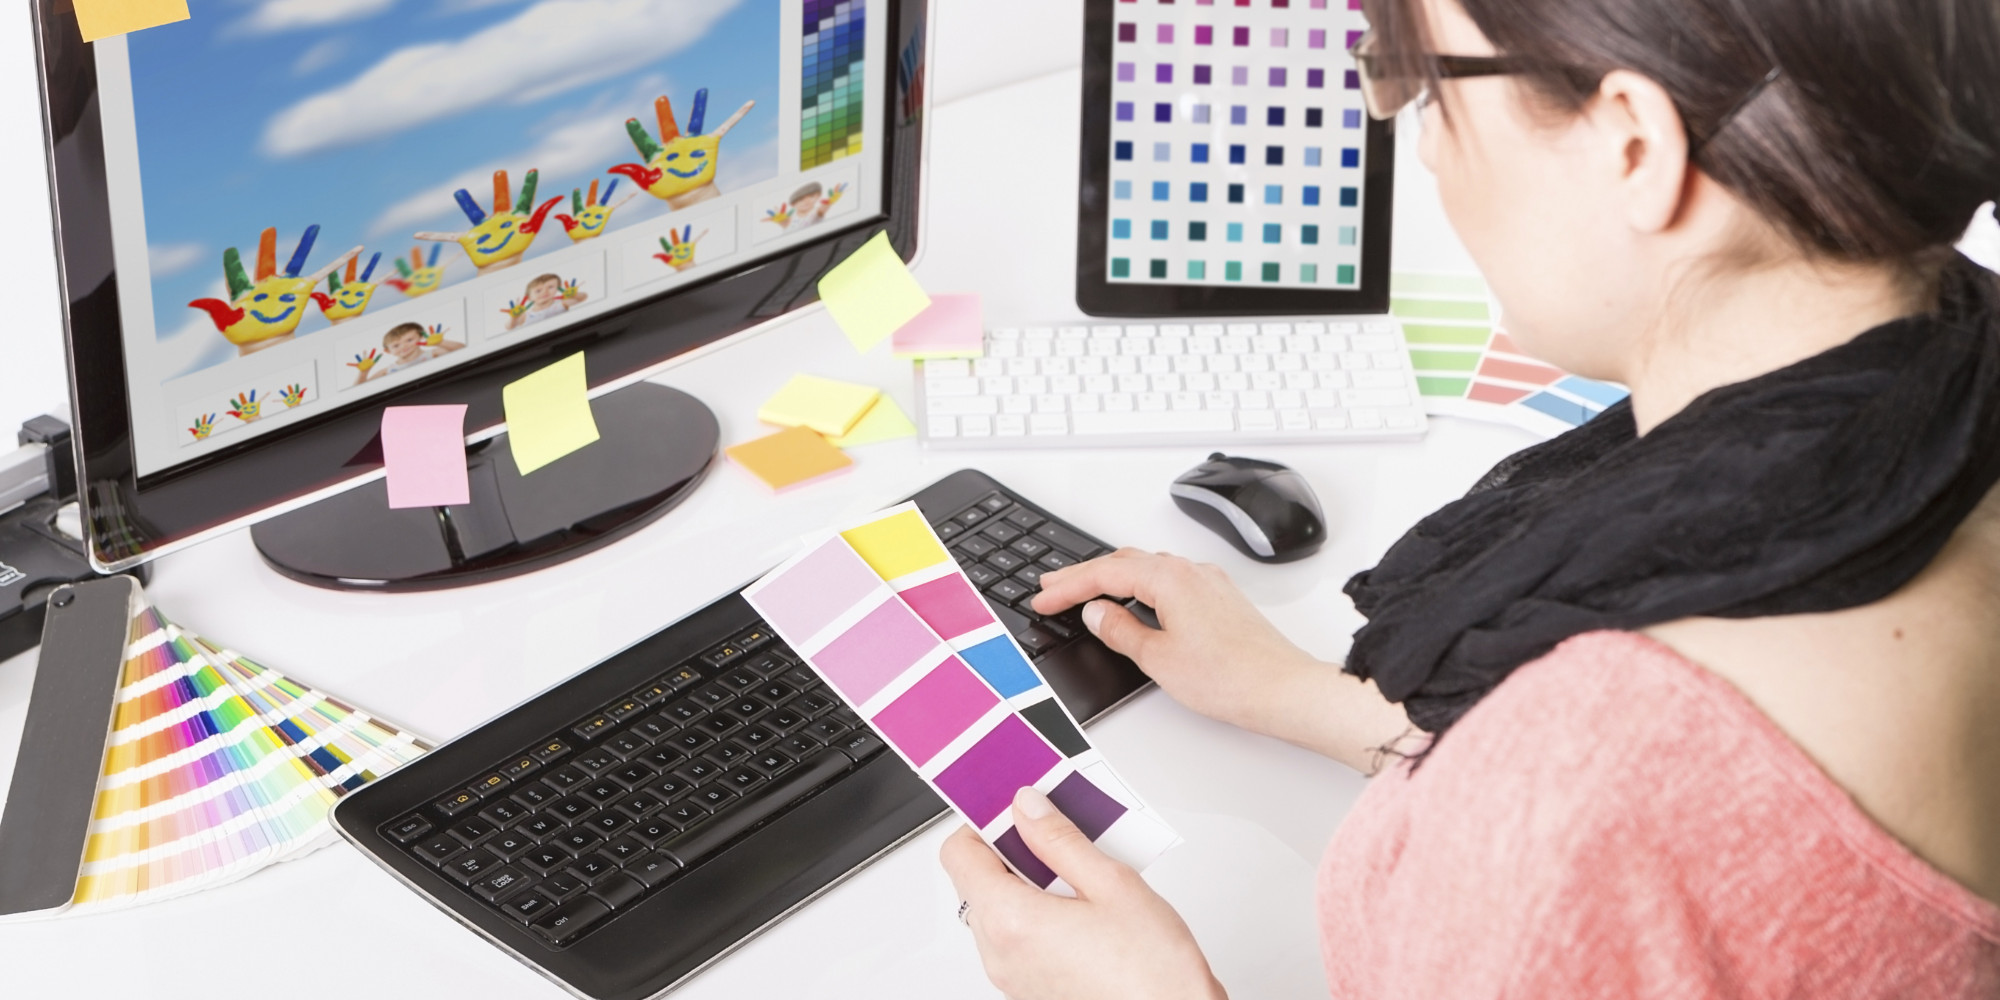 . The 6 Tools Every Graphic Designer Should Have   HuffPost